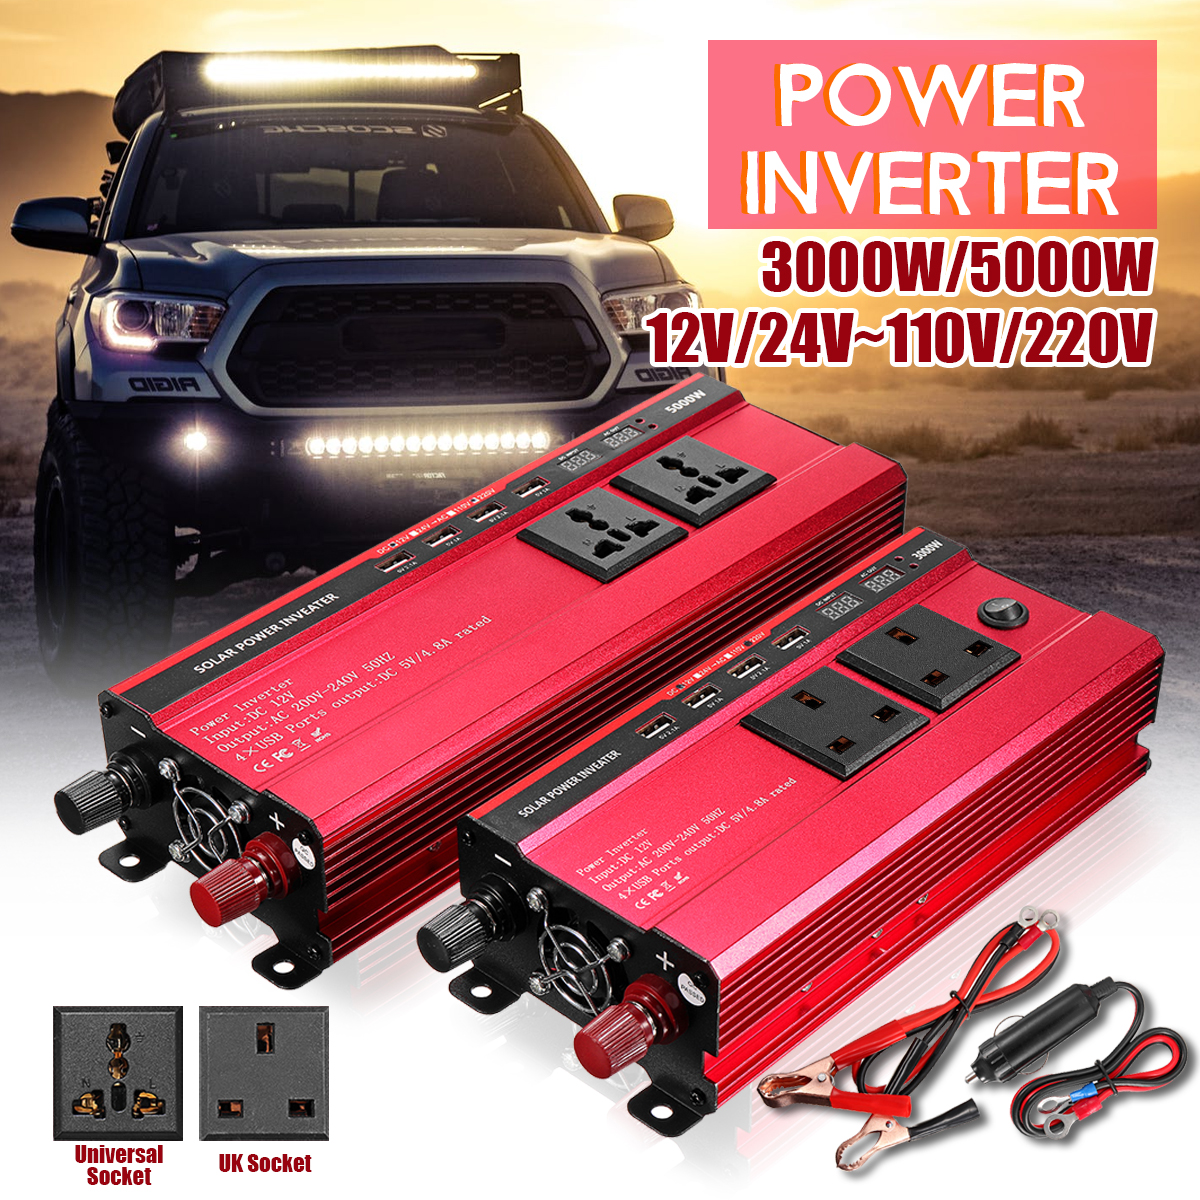 P500c 500w Car Power Inverter Dc12v To Ac220v Solar Inverter Modified Charger Es Solarenergie